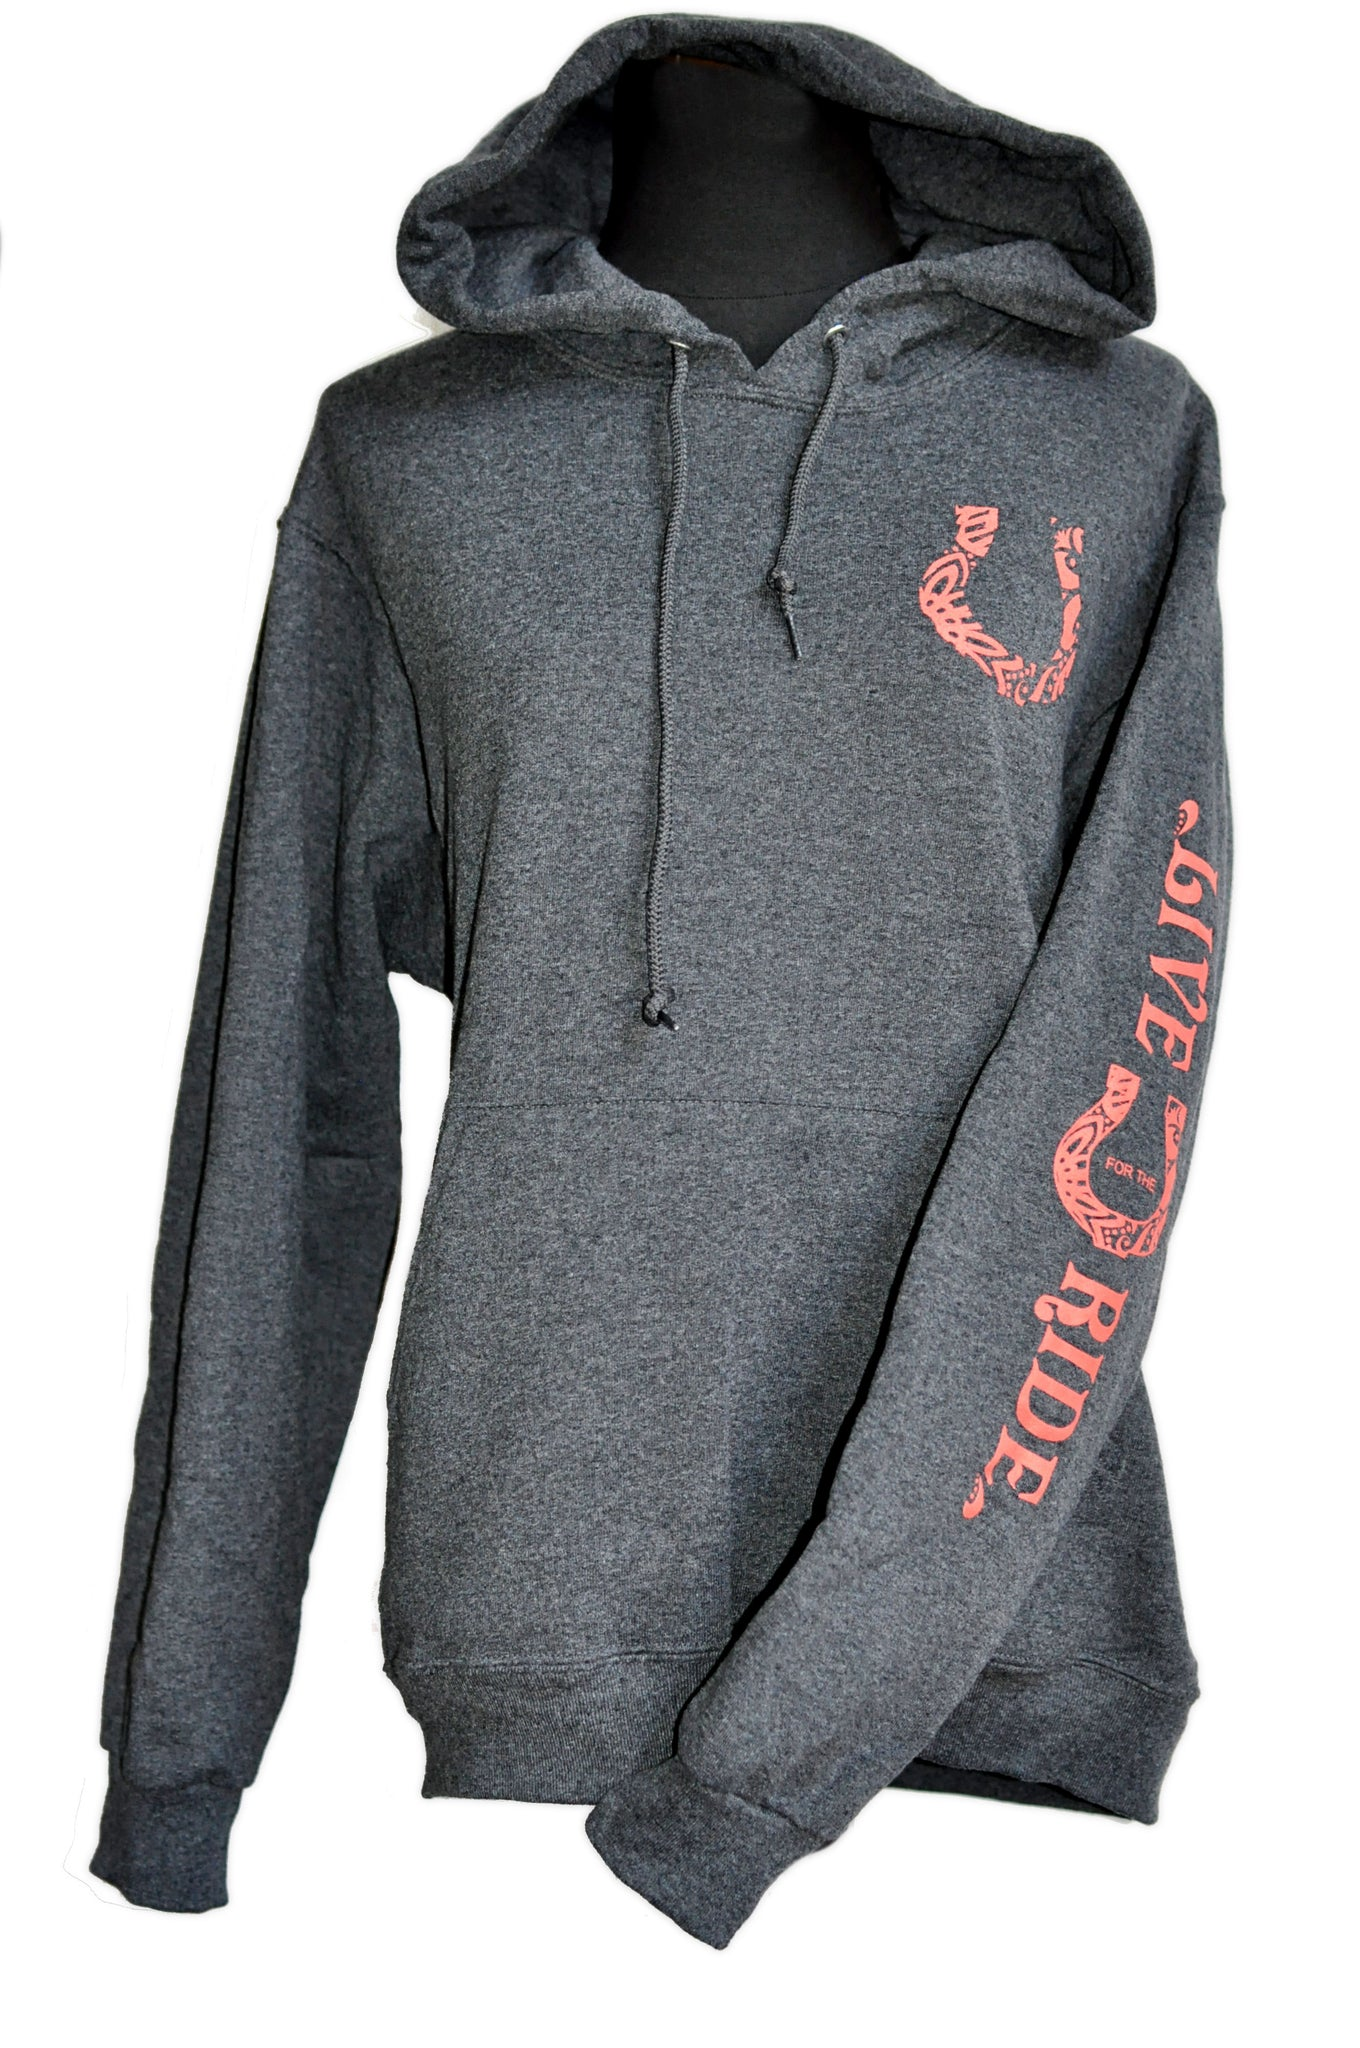 3a26f2f15f6d5 ... BoHo Horse Hoodie - Live for the Ride ...